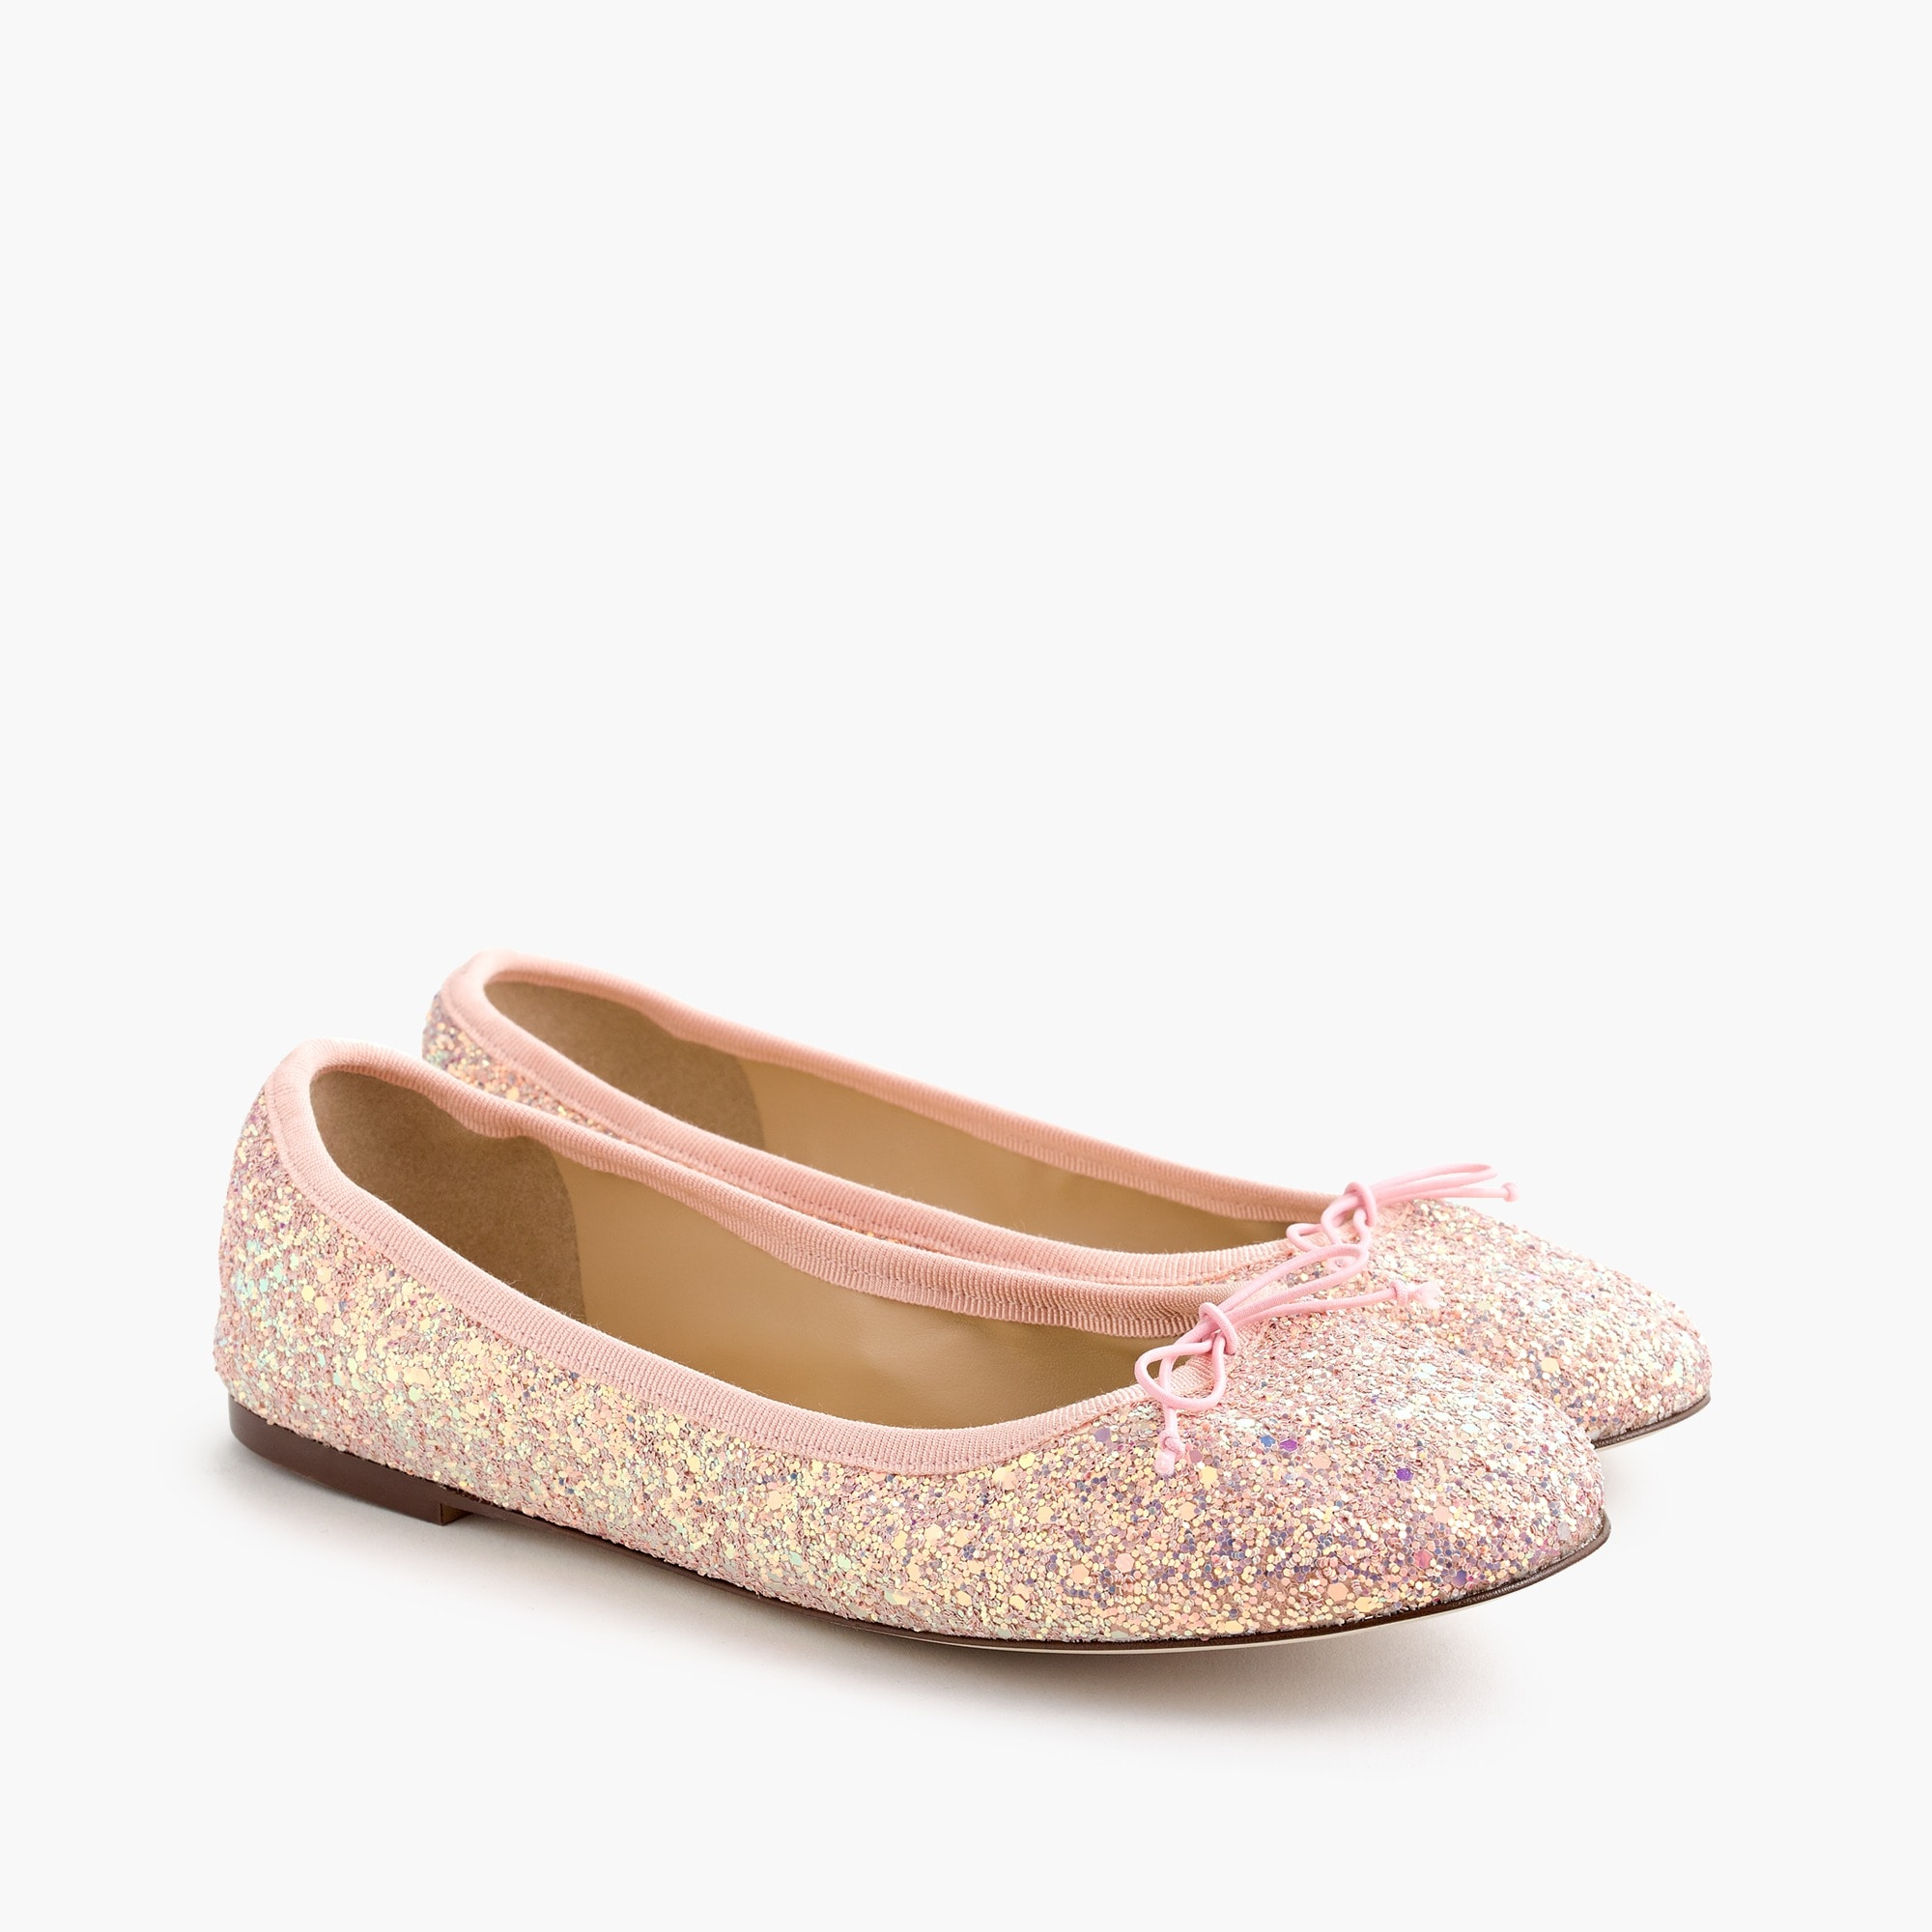 women's evie ballet flats in glitter - women's footwear